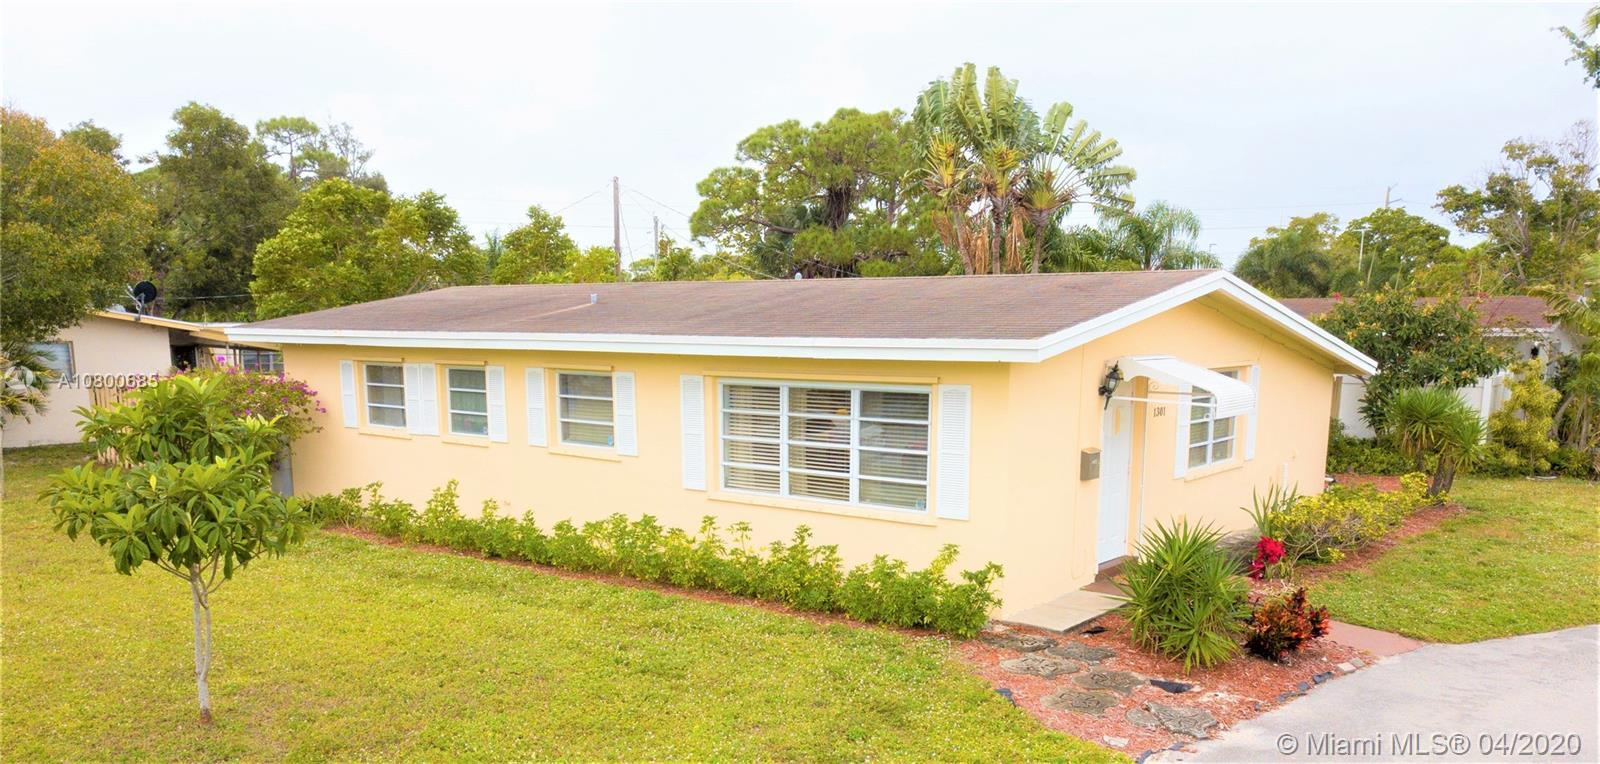 ABSOLUTELY CHARMING 3/2 single family home w/ENORMOUS CORNER LOT: approx 11,000 sq ft! This cute hom